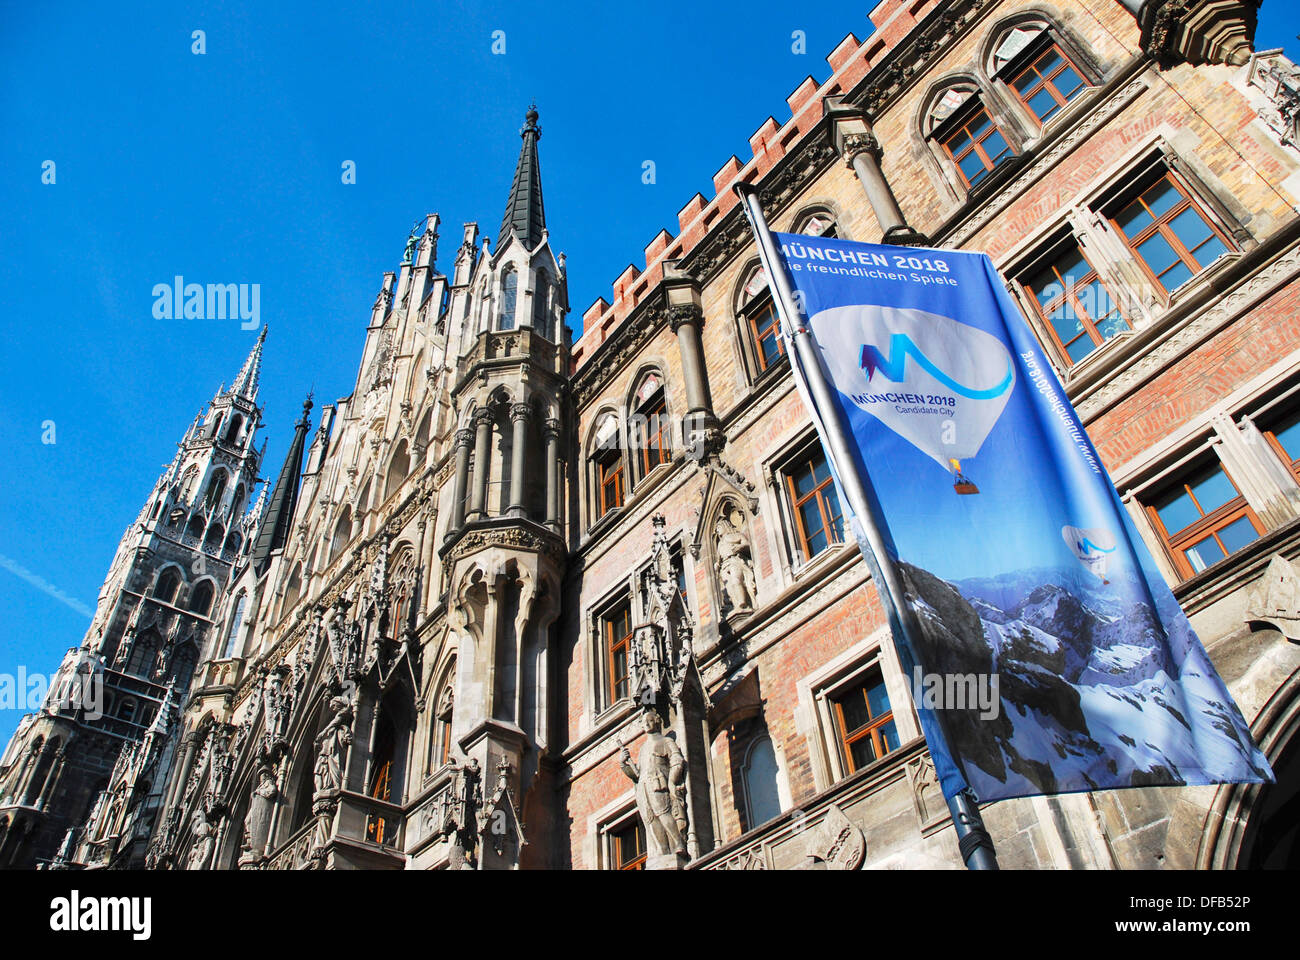 Application For Olympic flag in front of the Winter Games in 2018 before the Munich City Hall - Stock Image